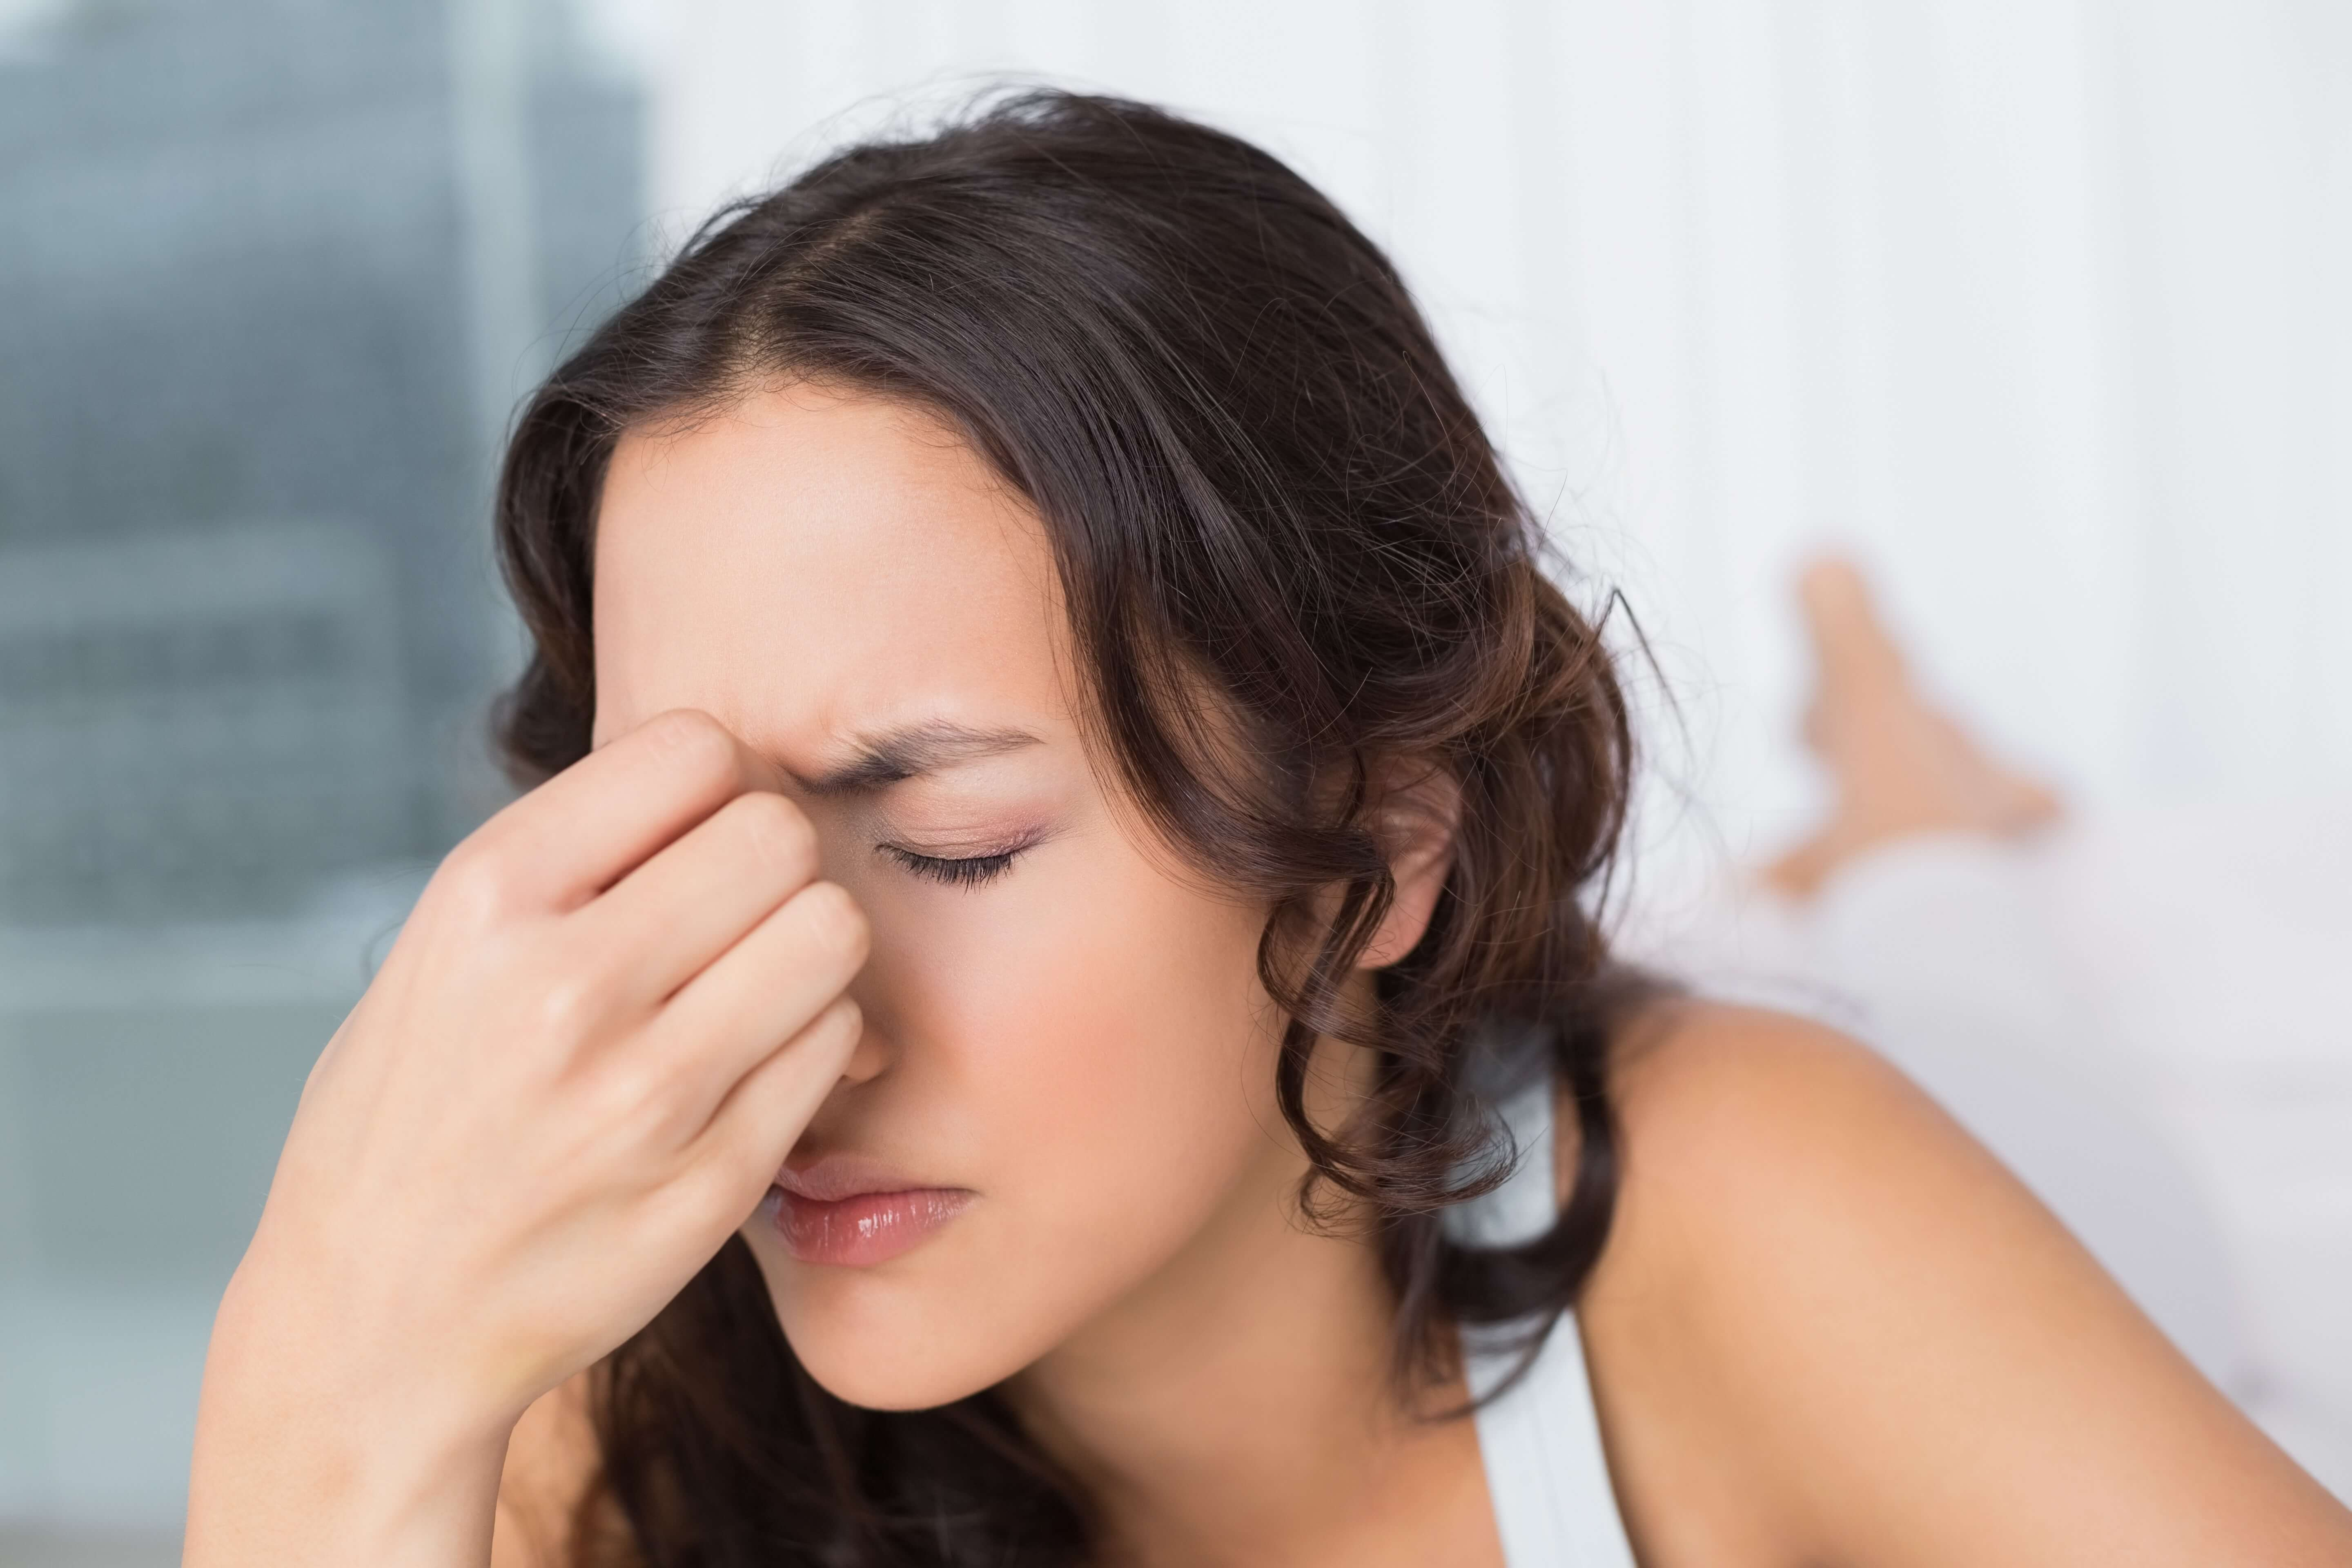 Good News for Those Suffering from Migraines and Hypertension